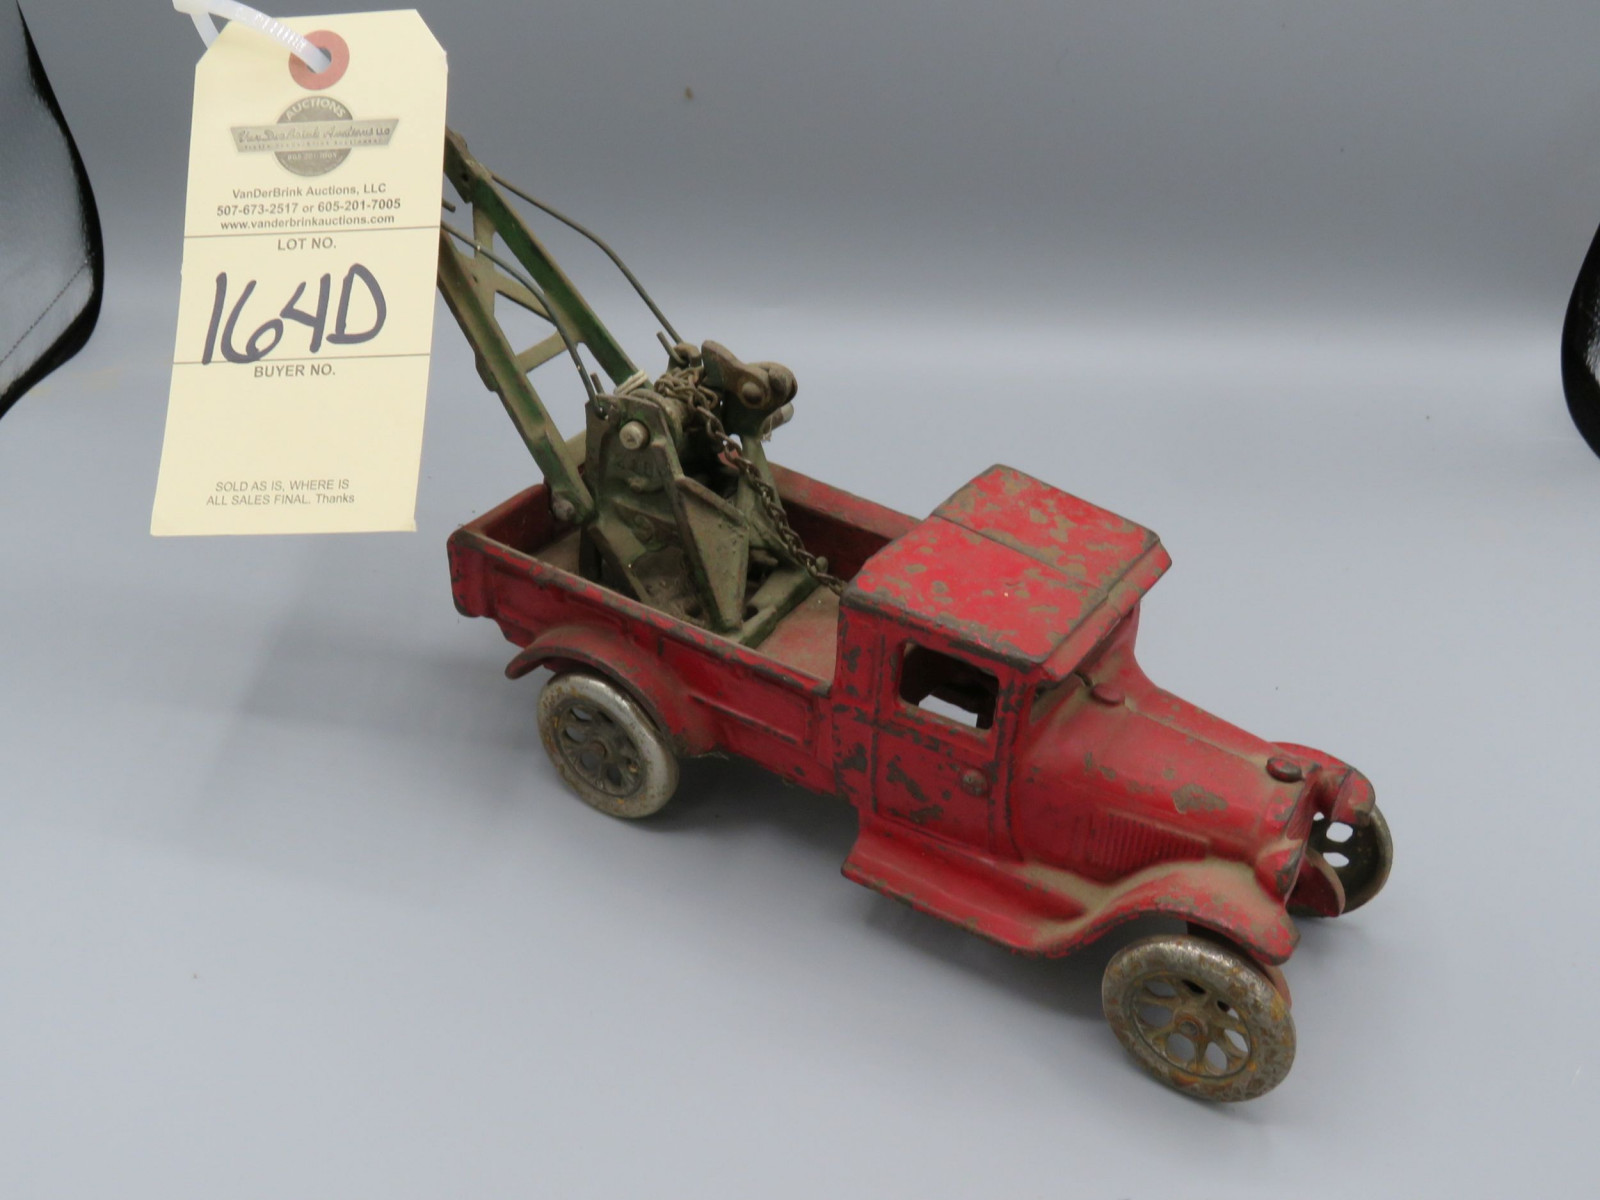 Cast Iron Tow Truck @1929 Approx. 8 inches - Image 1